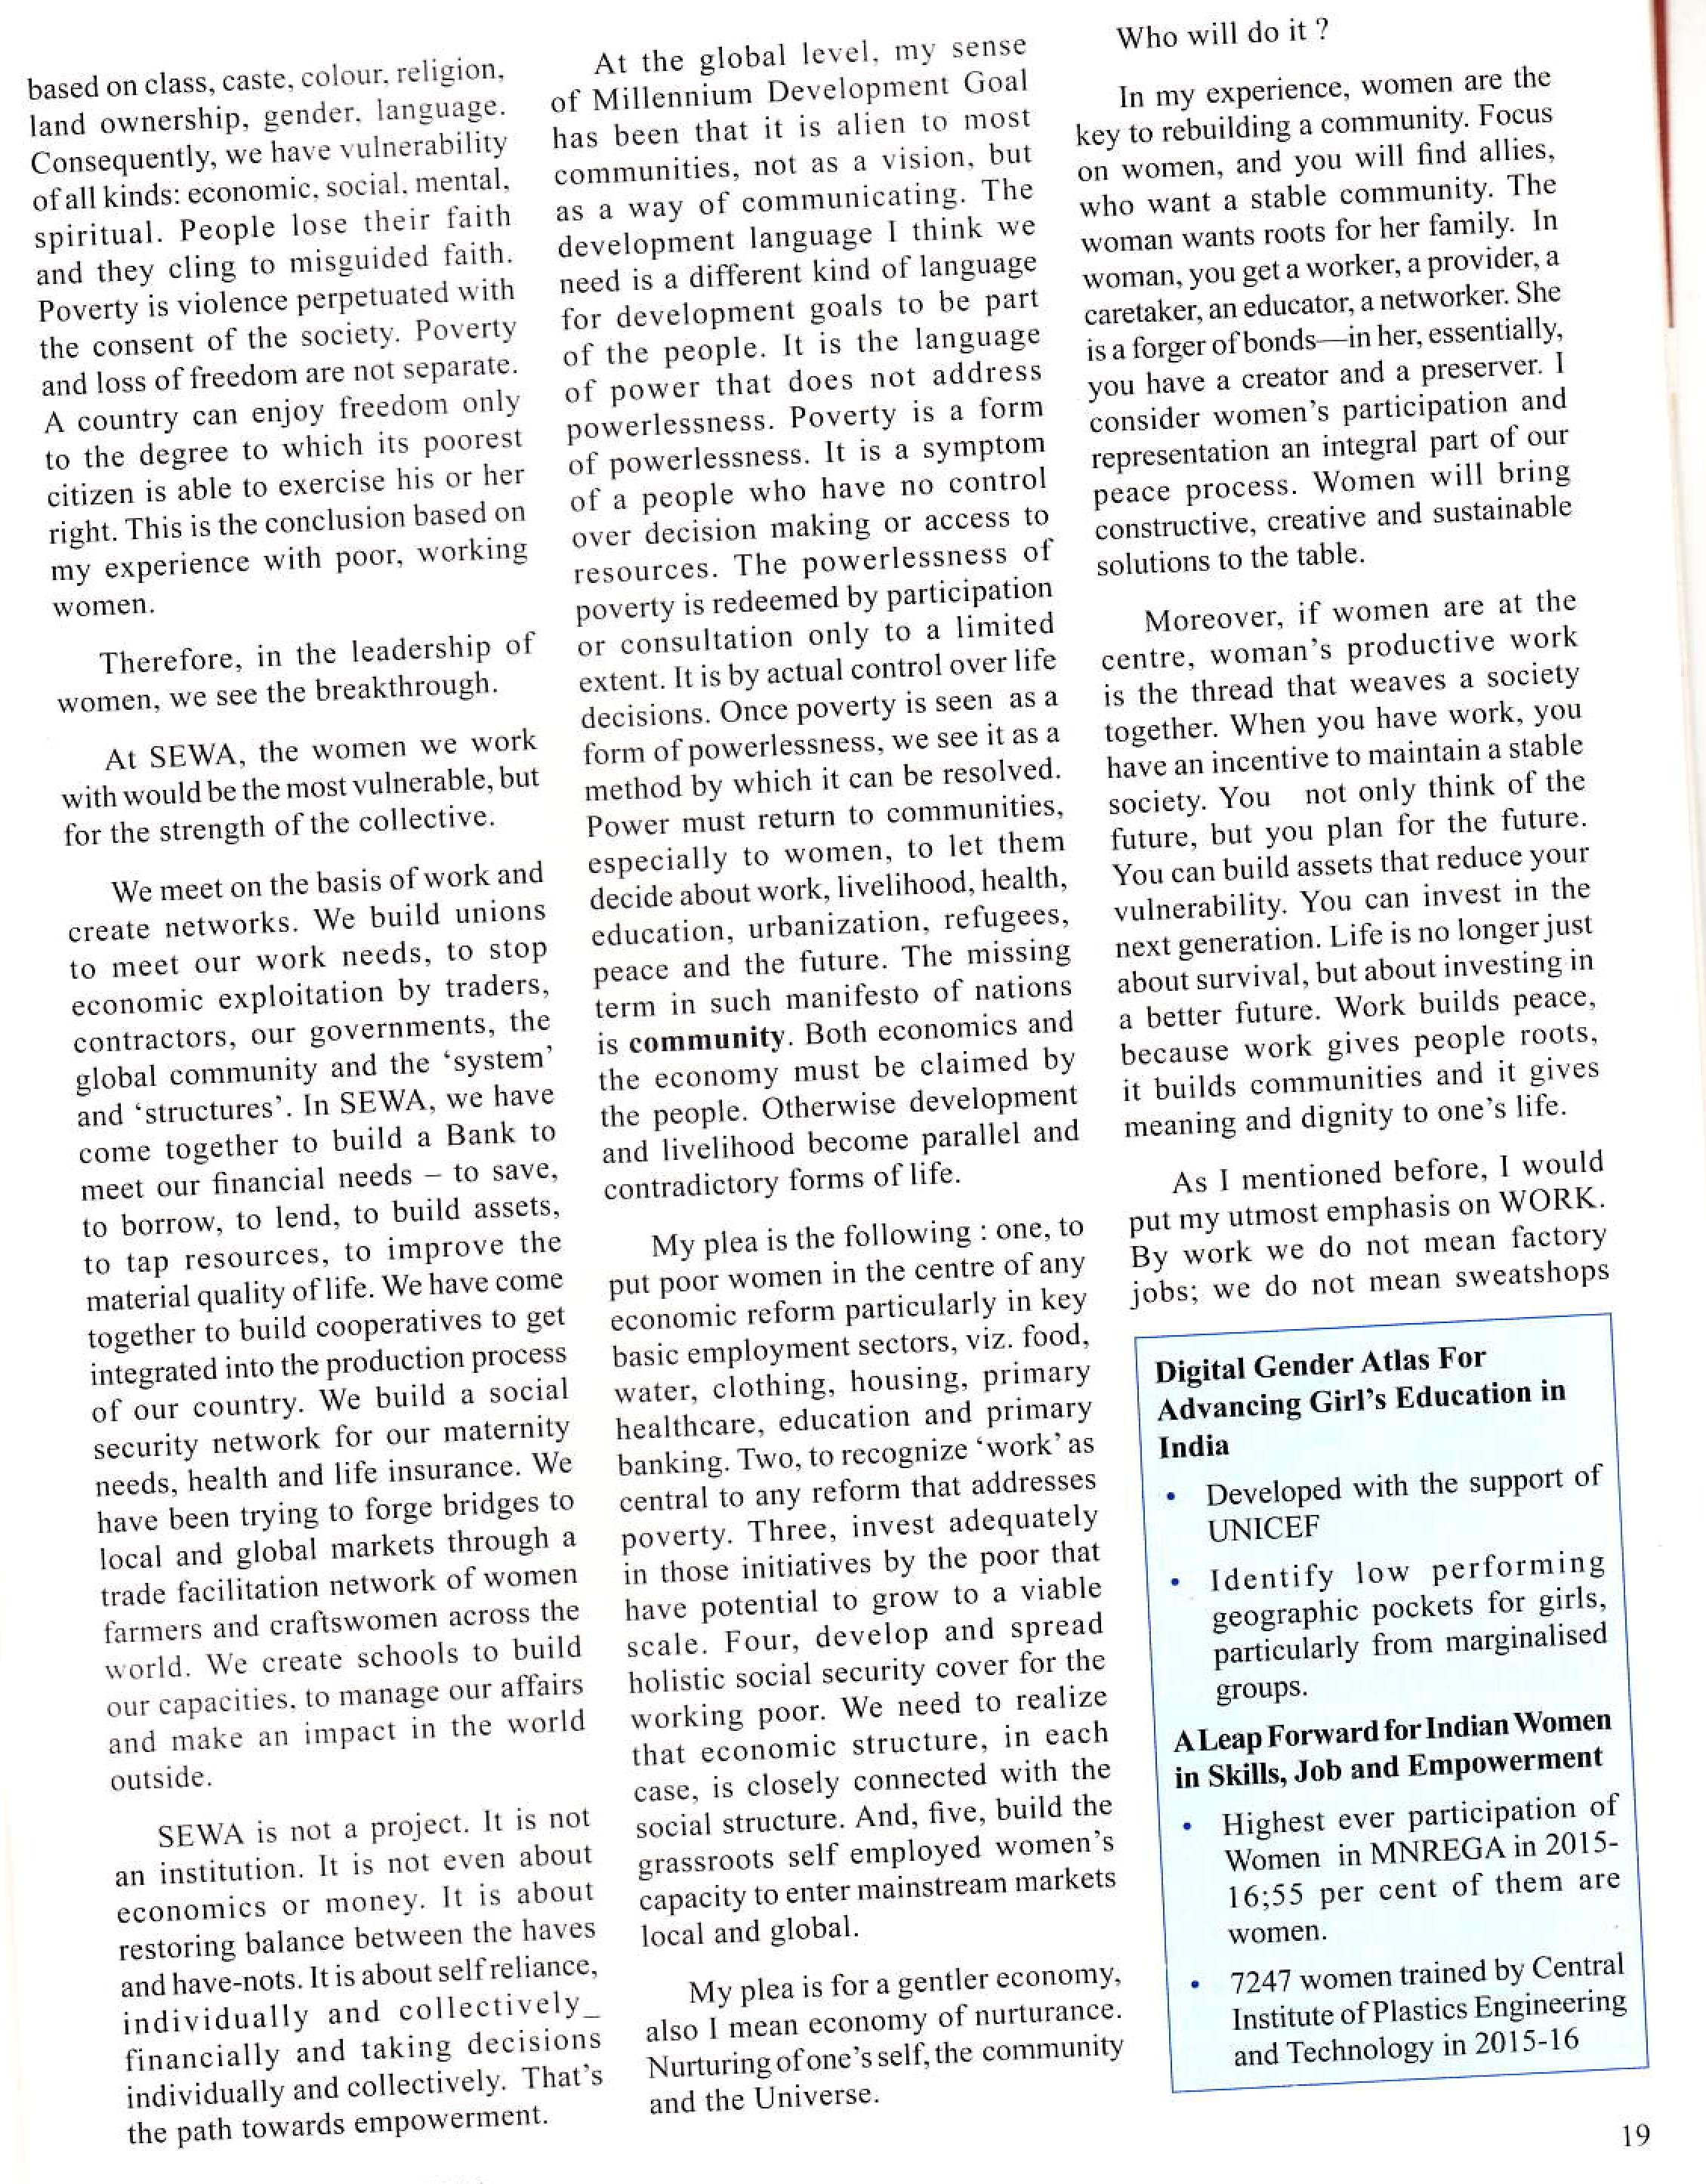 img-1-page-002